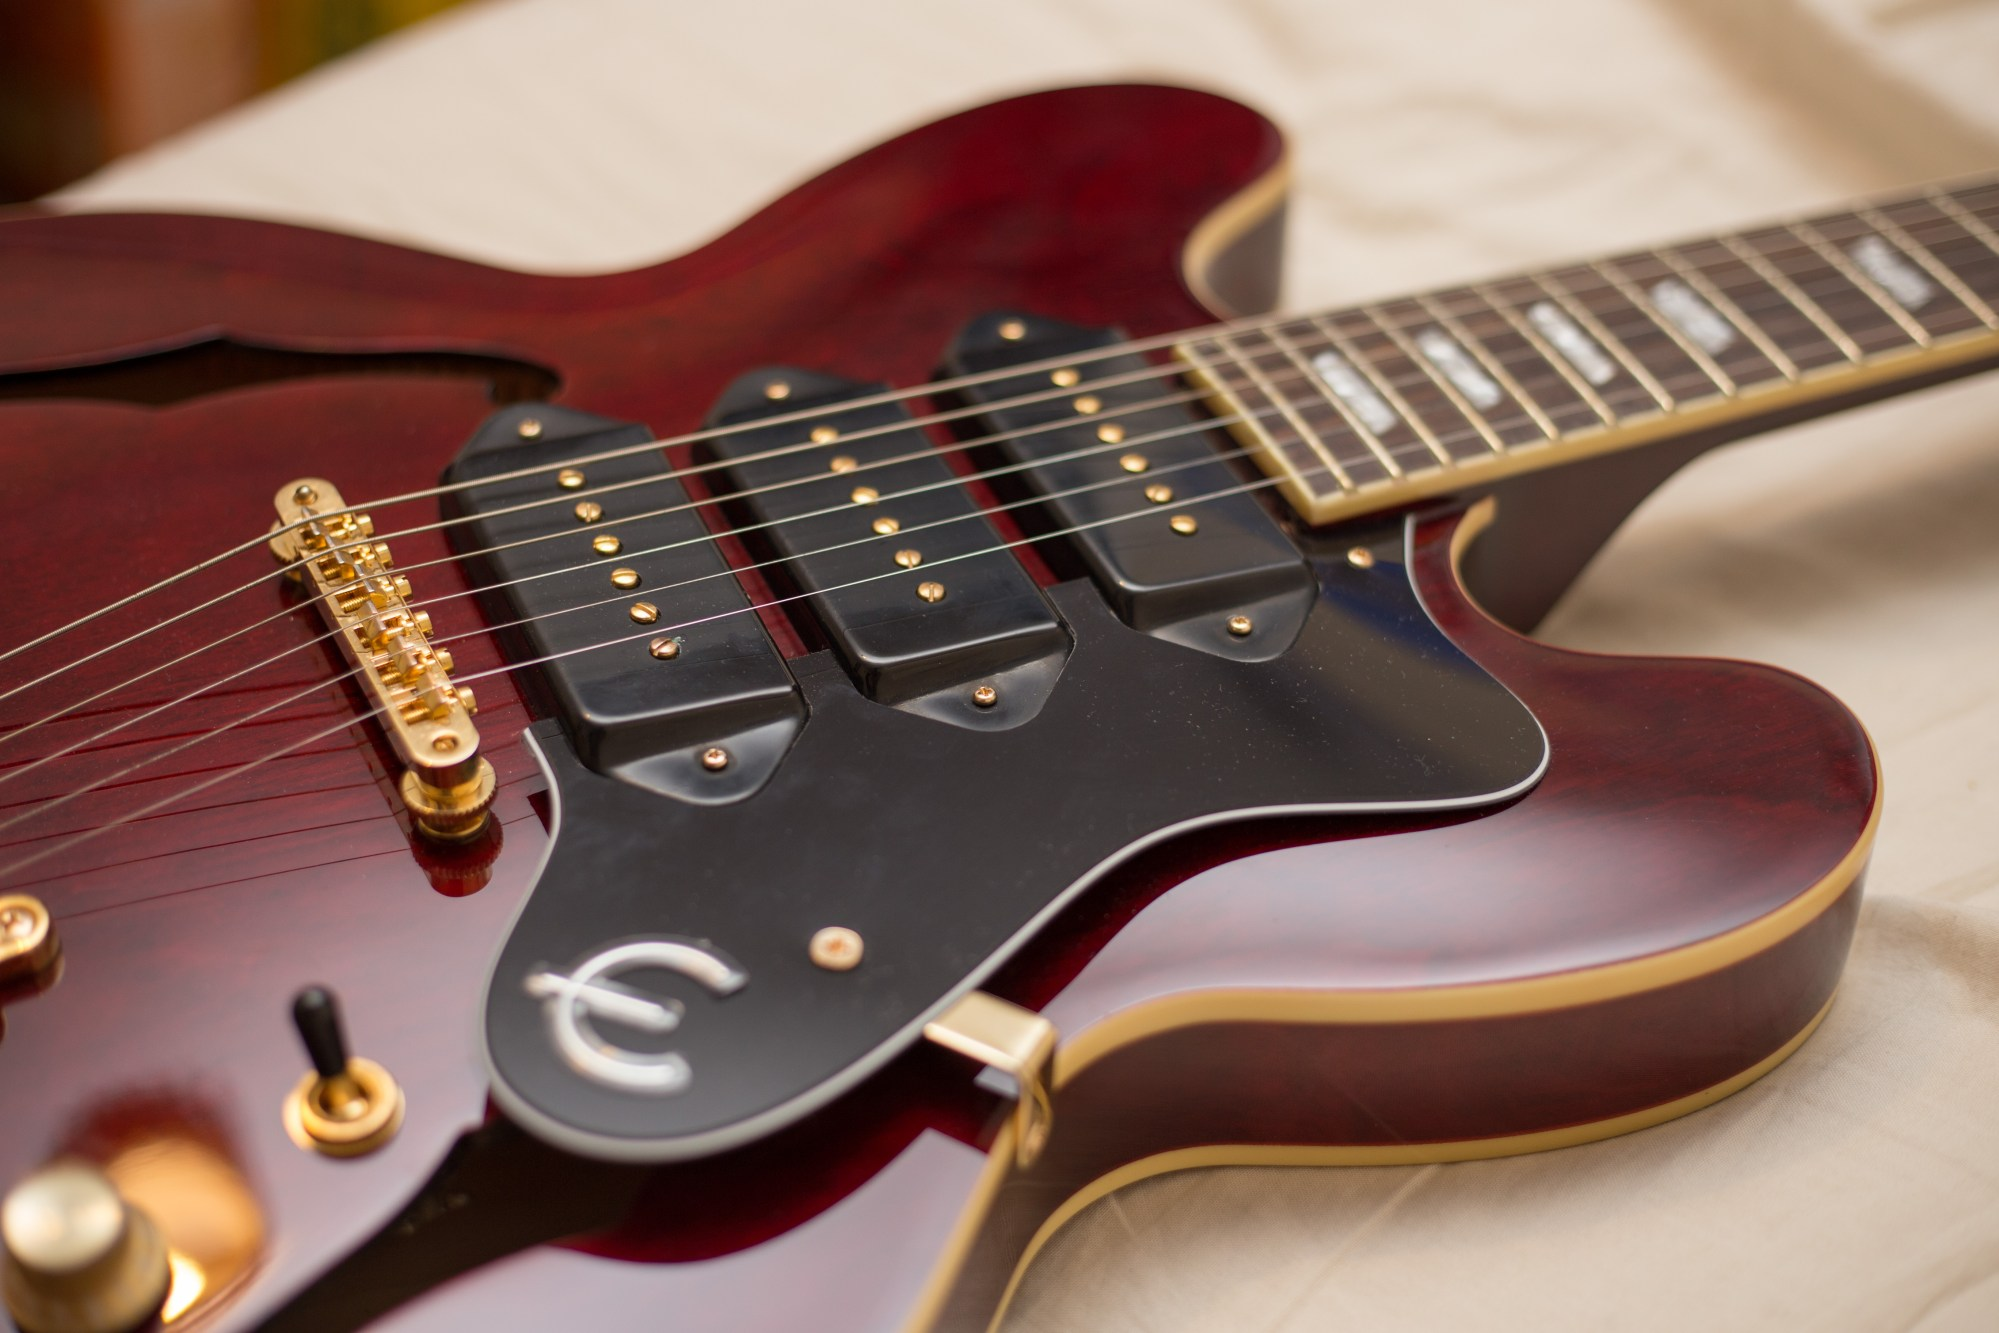 hight resolution of the epiphone riviera with a fretboard made of rosewood with a pearloid parallelogram overlay is a beautiful semi hollow guitar that produces an adaptable